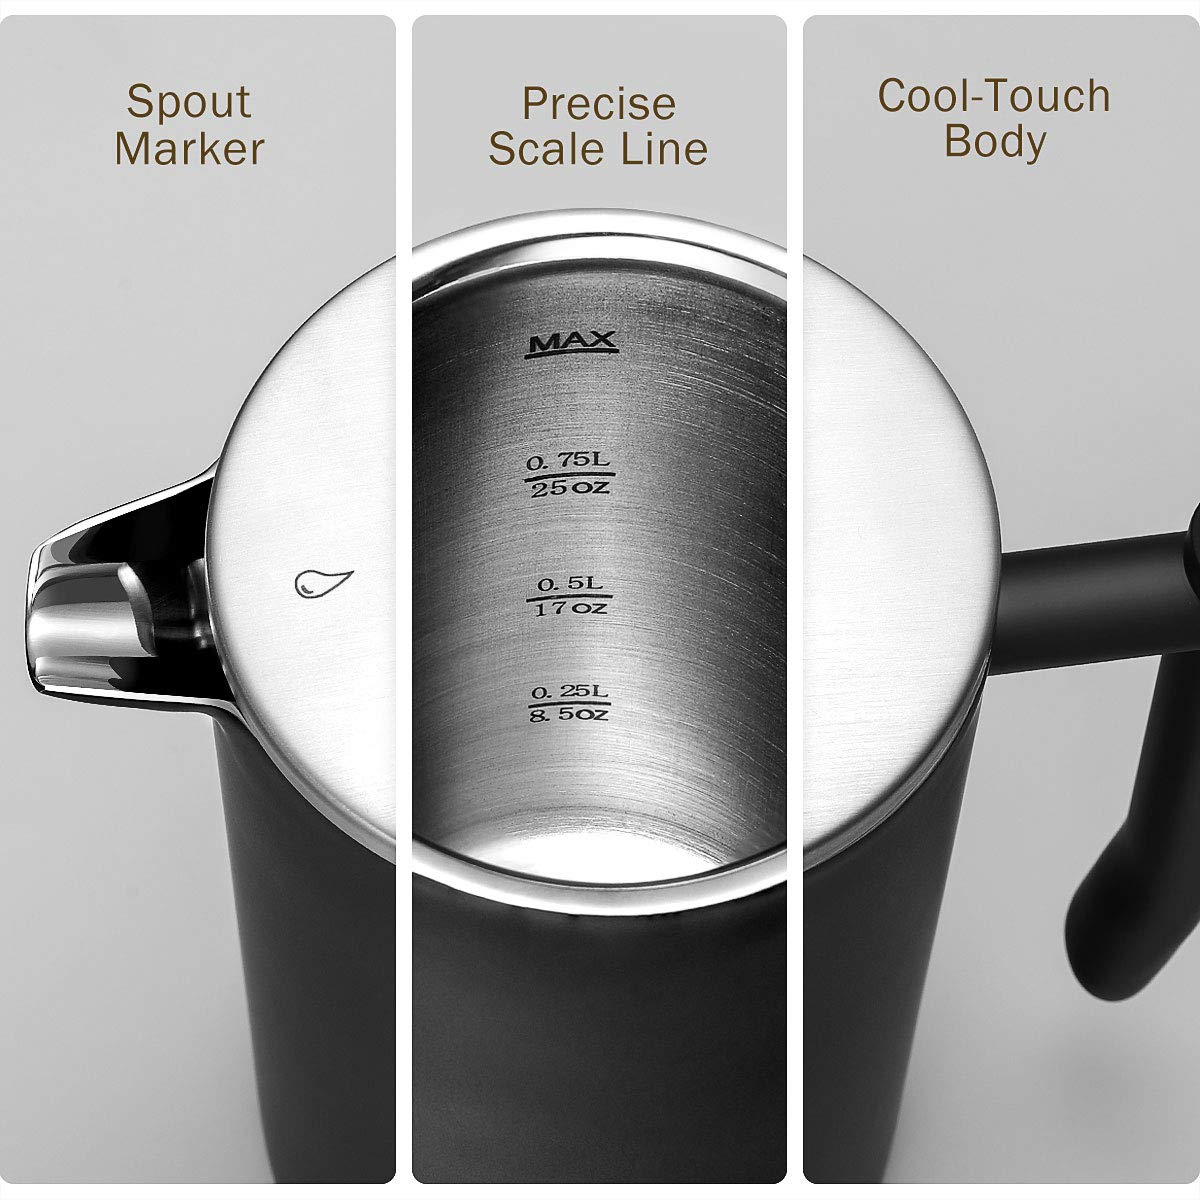 2 Extra Filters Included Black 1L Multi-Screen System Dishwasher Safe, Veken French Press Double-Wall 18//10 Stainless Steel Coffee /& Tea Maker Rust-Free